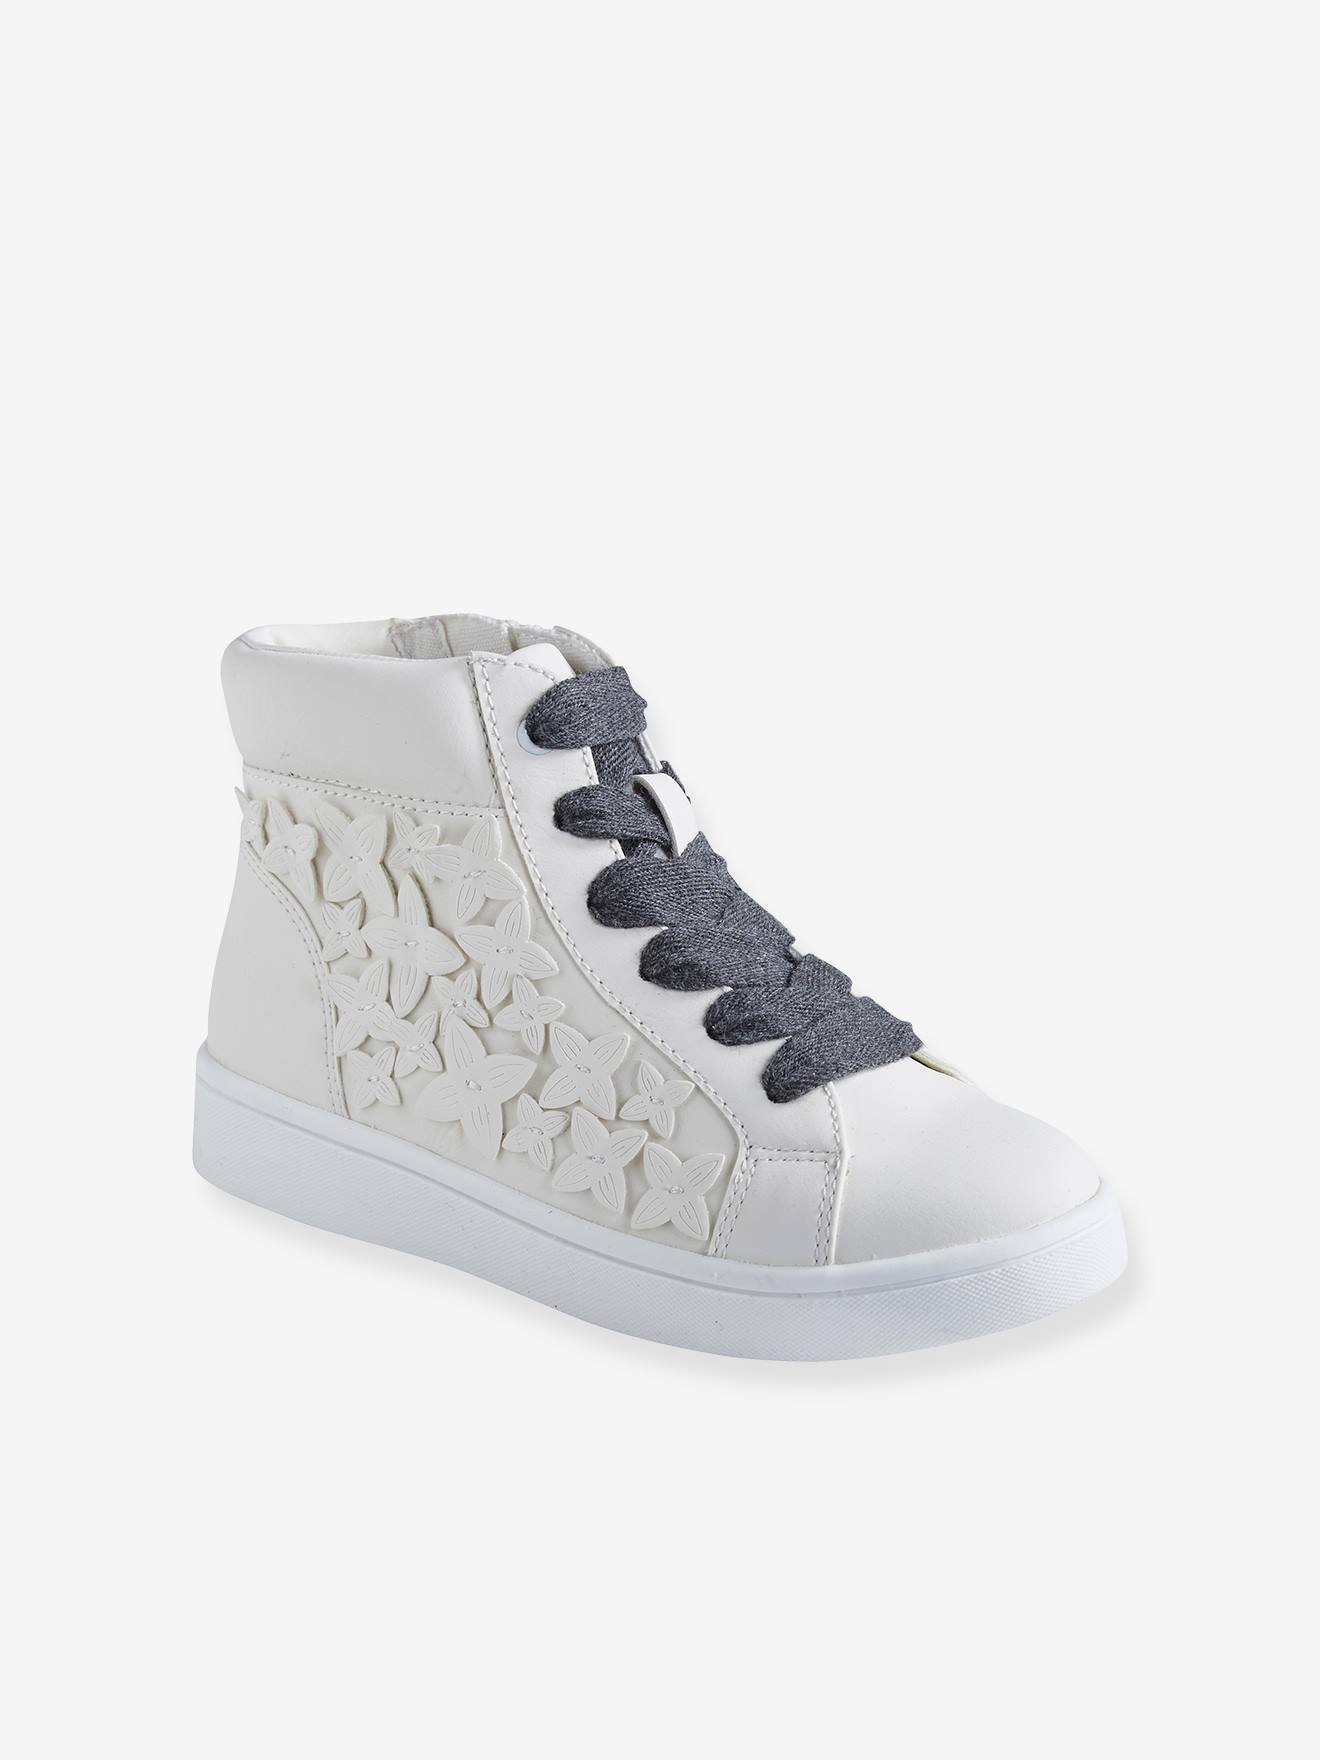 Laces, for Girls - white light solid